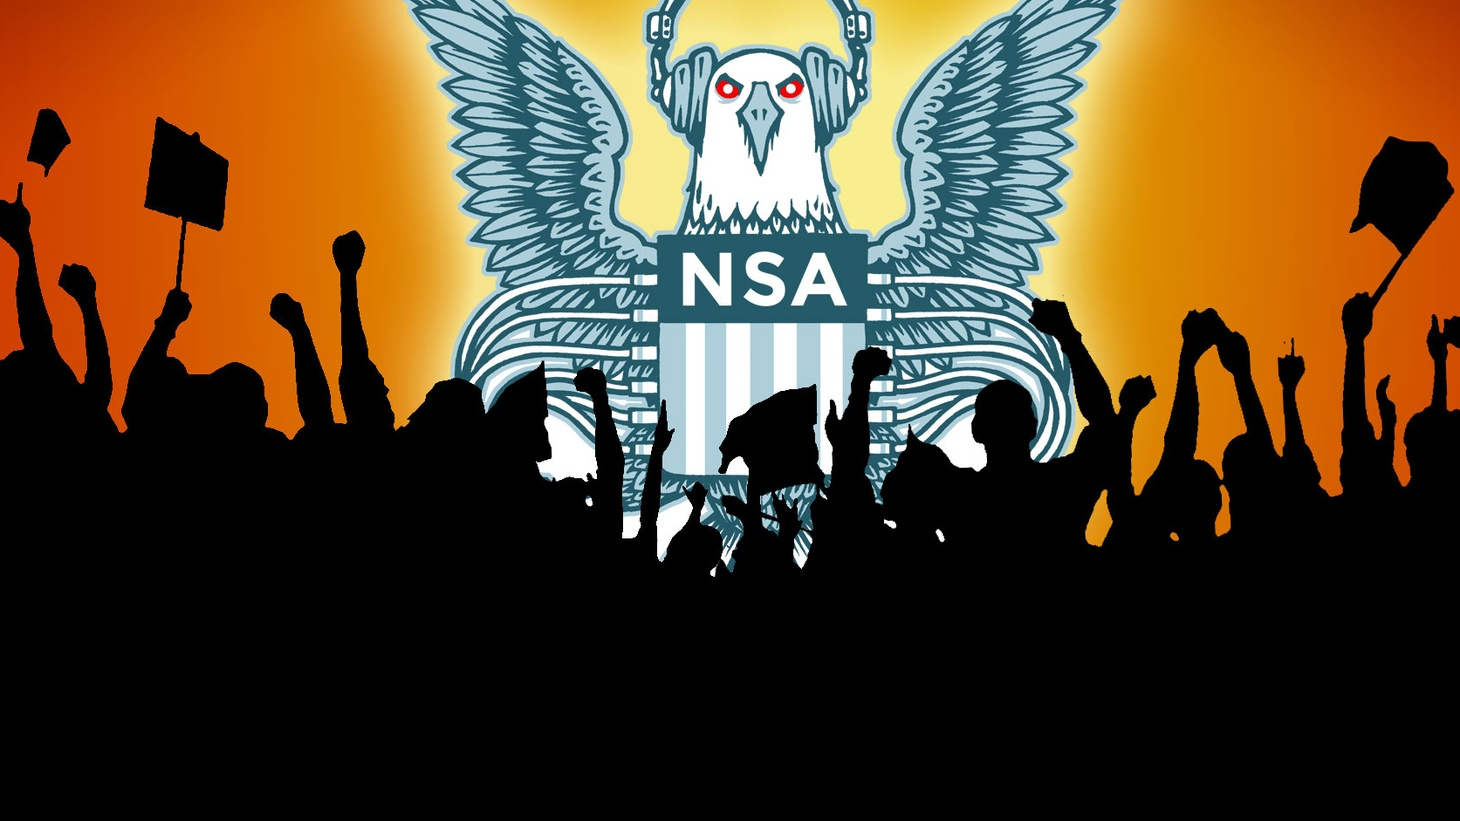 Two years ago revelations about National Security surveillance of Americans created a national uproar. Now the authority to collect bulk telephone records is about to expire. Congress is divided between concern for national security and civil liberties. Are most Americans really concerned about their possible loss of privacy?